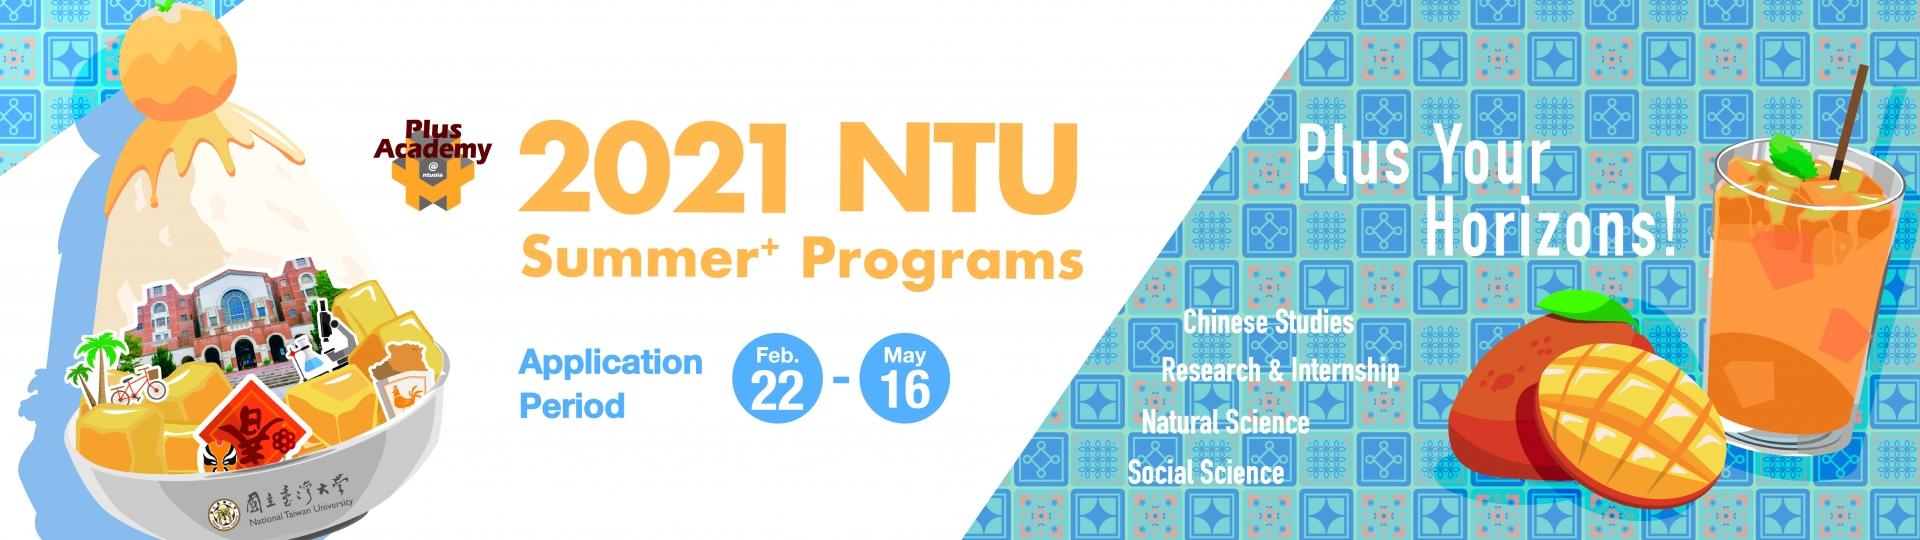 2021 NTU Plus Academy Summer+ Programs